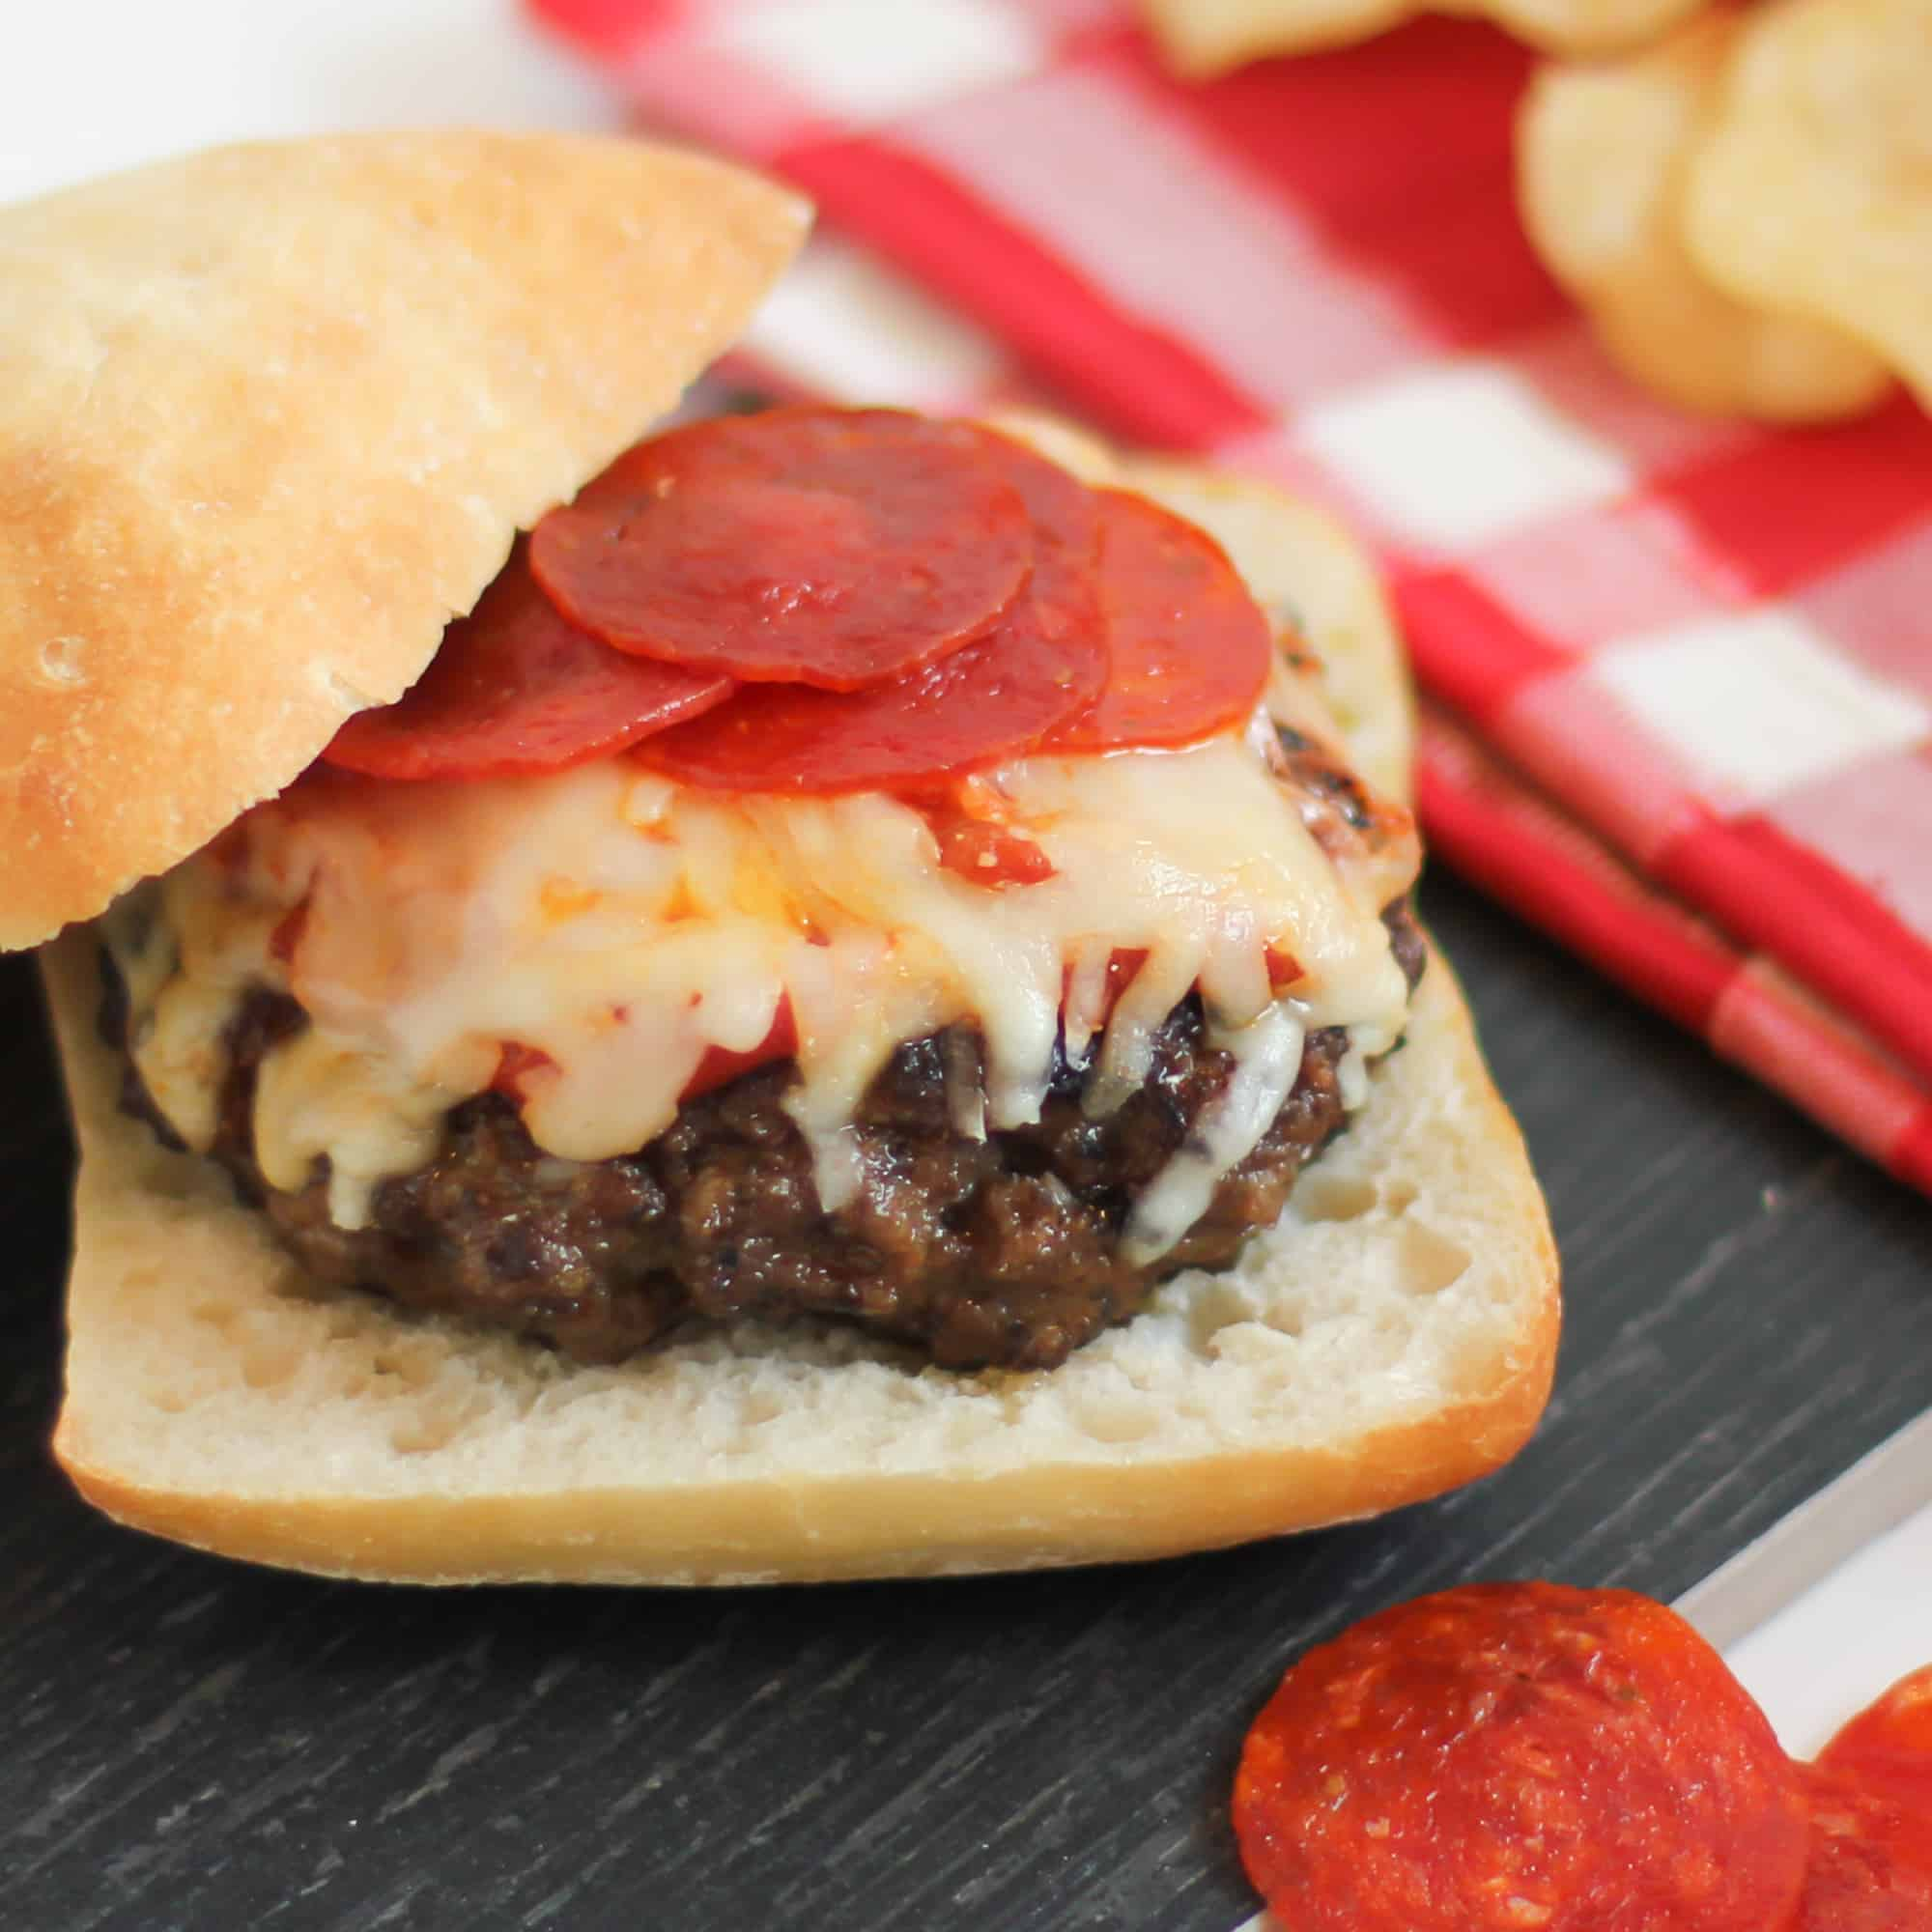 Fresh homemade burger with Italian pizzeria flavours.